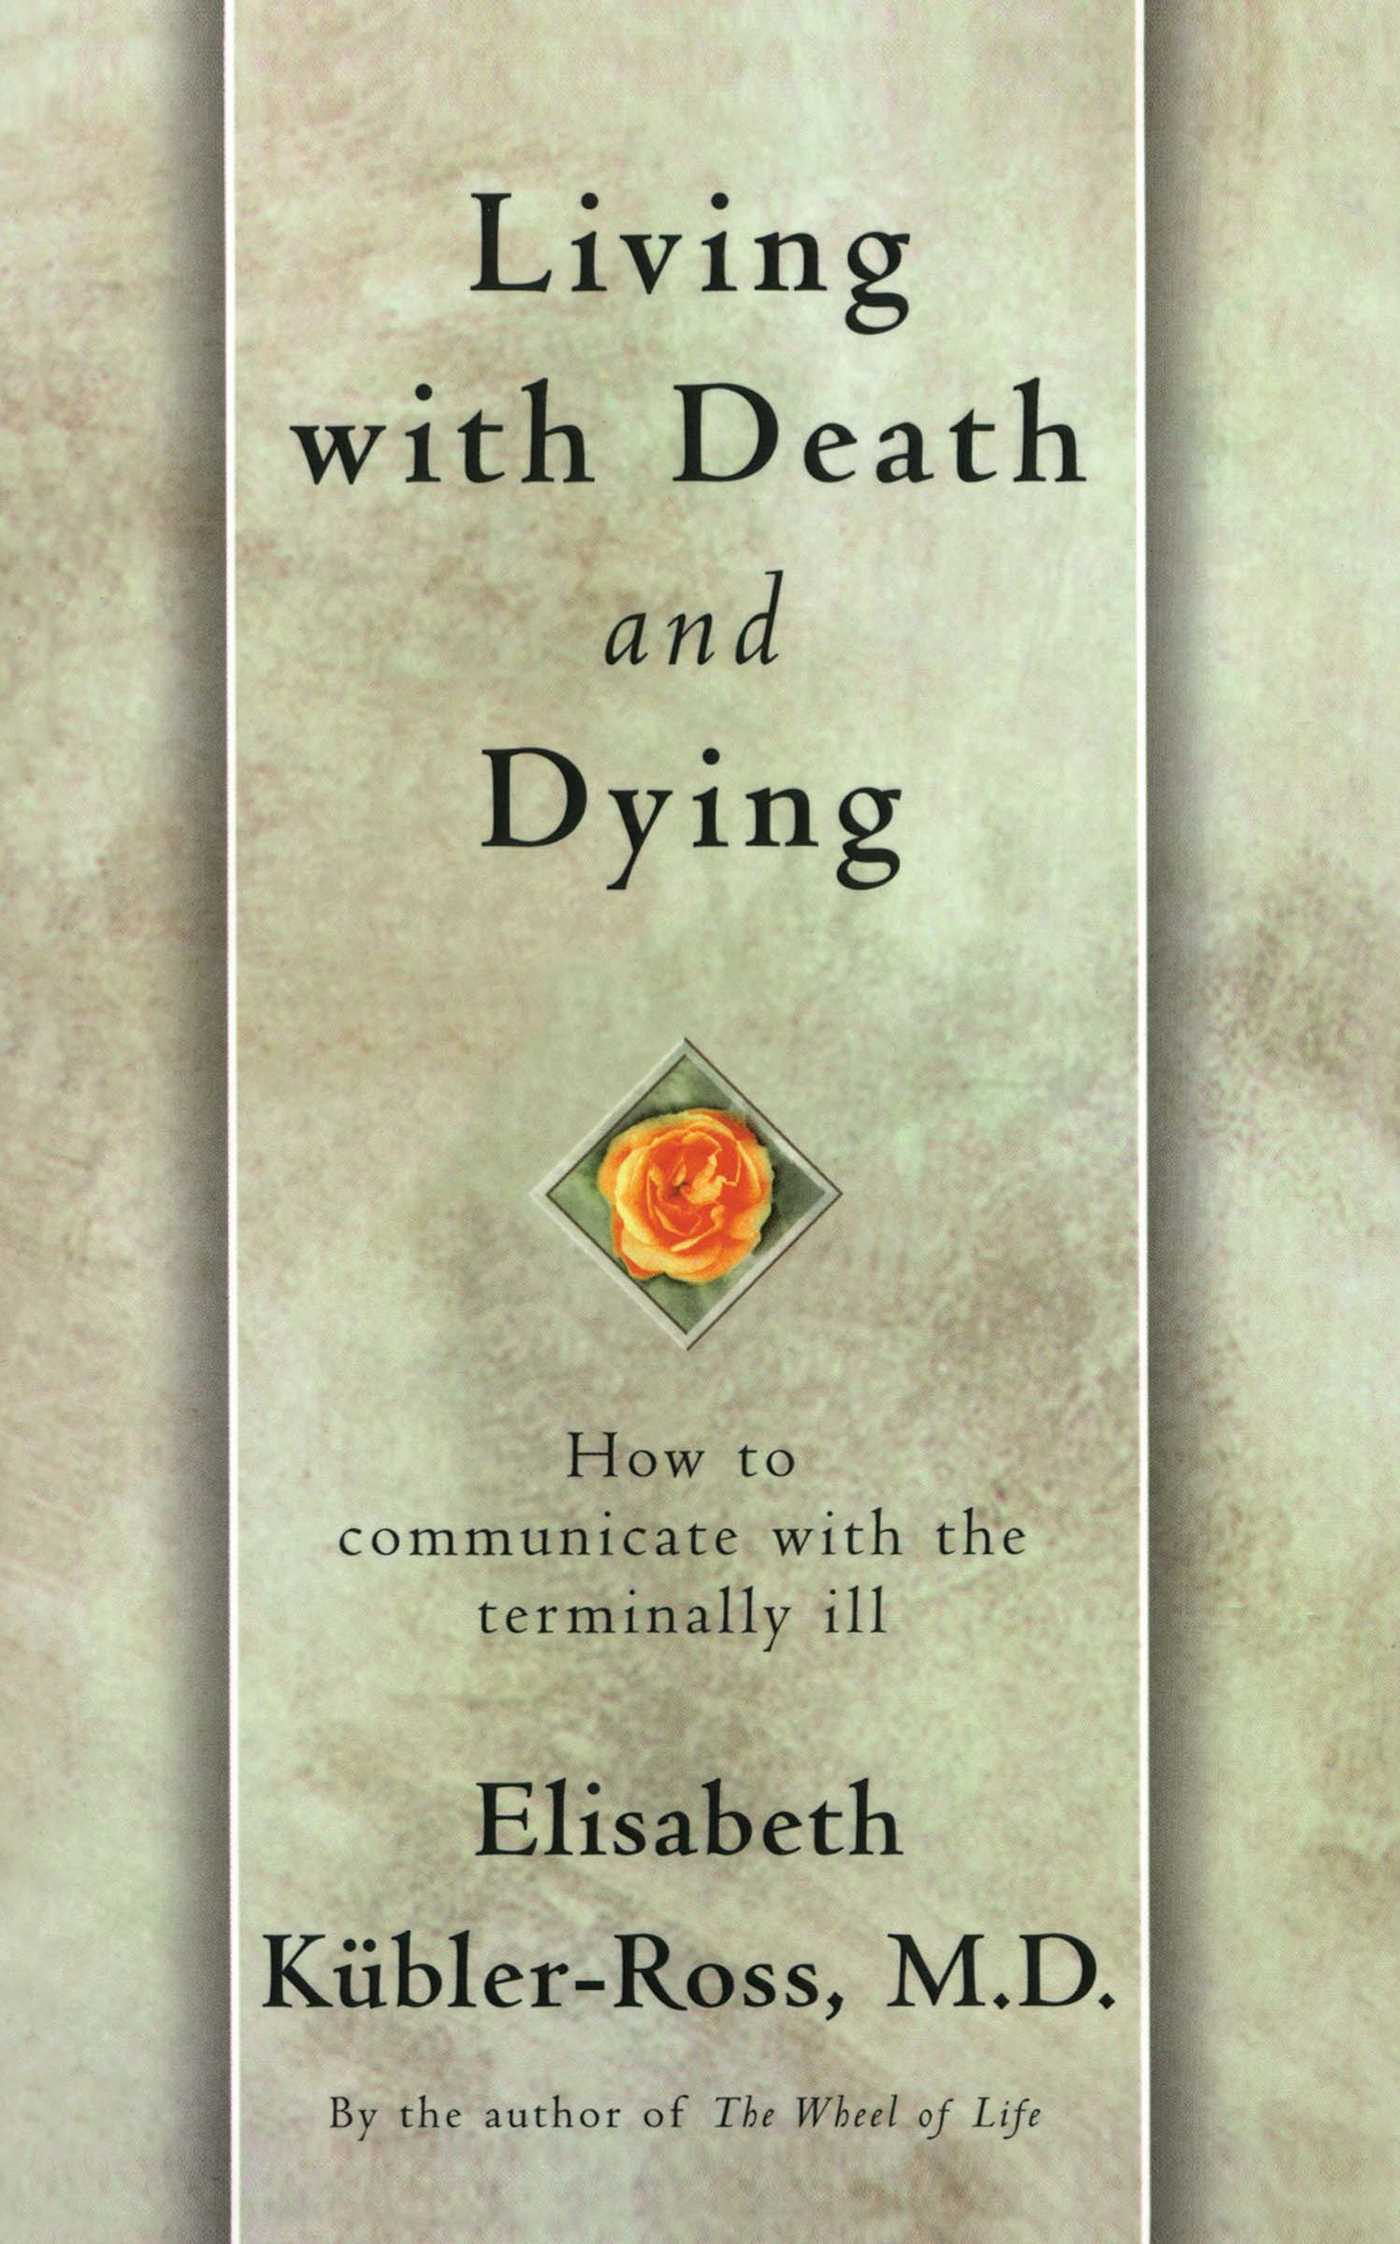 Book Cover Image (jpg): Living with Death and Dying